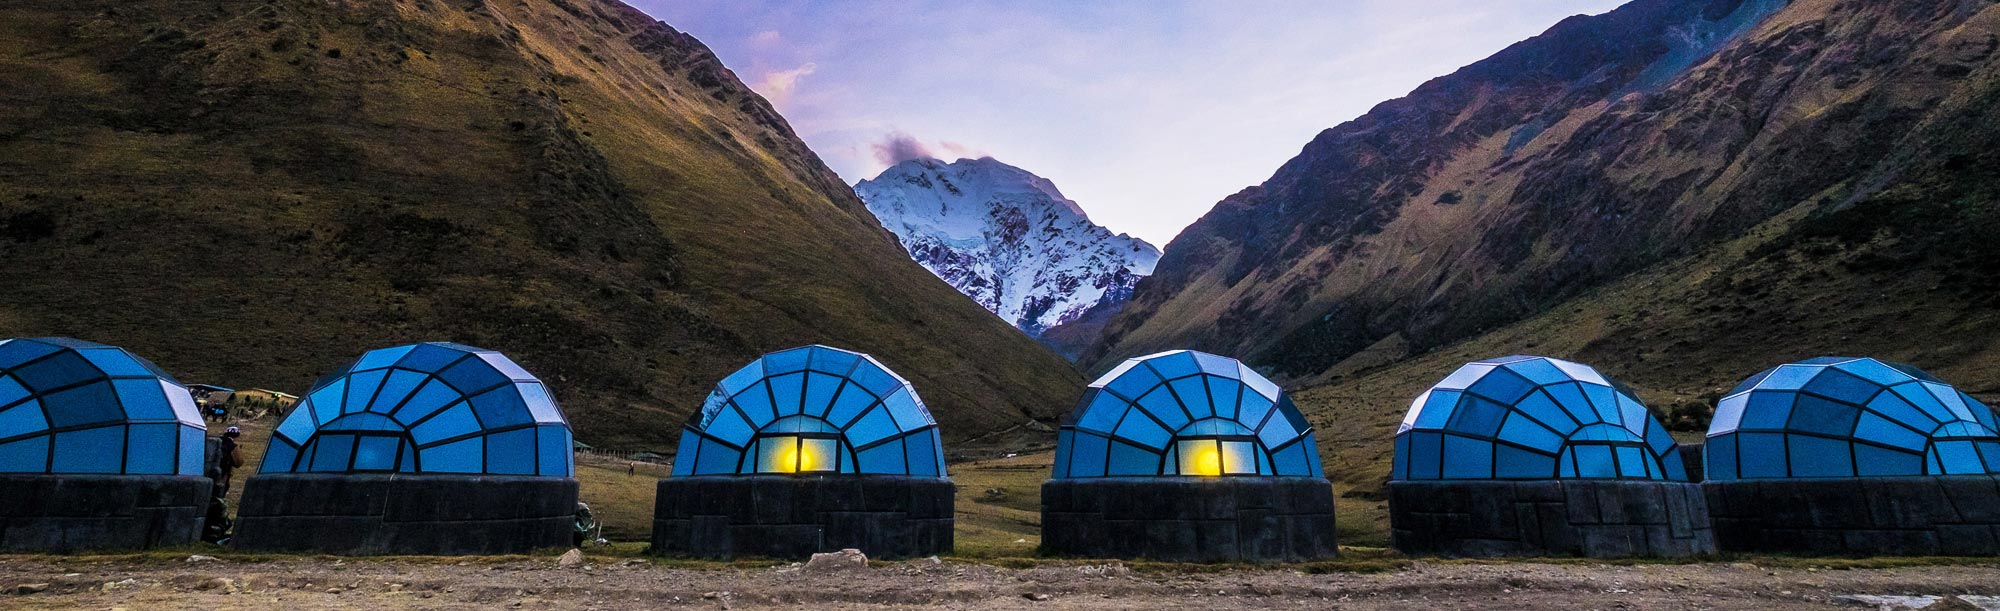 Salkantay Sky Lodge & Humantay Lake